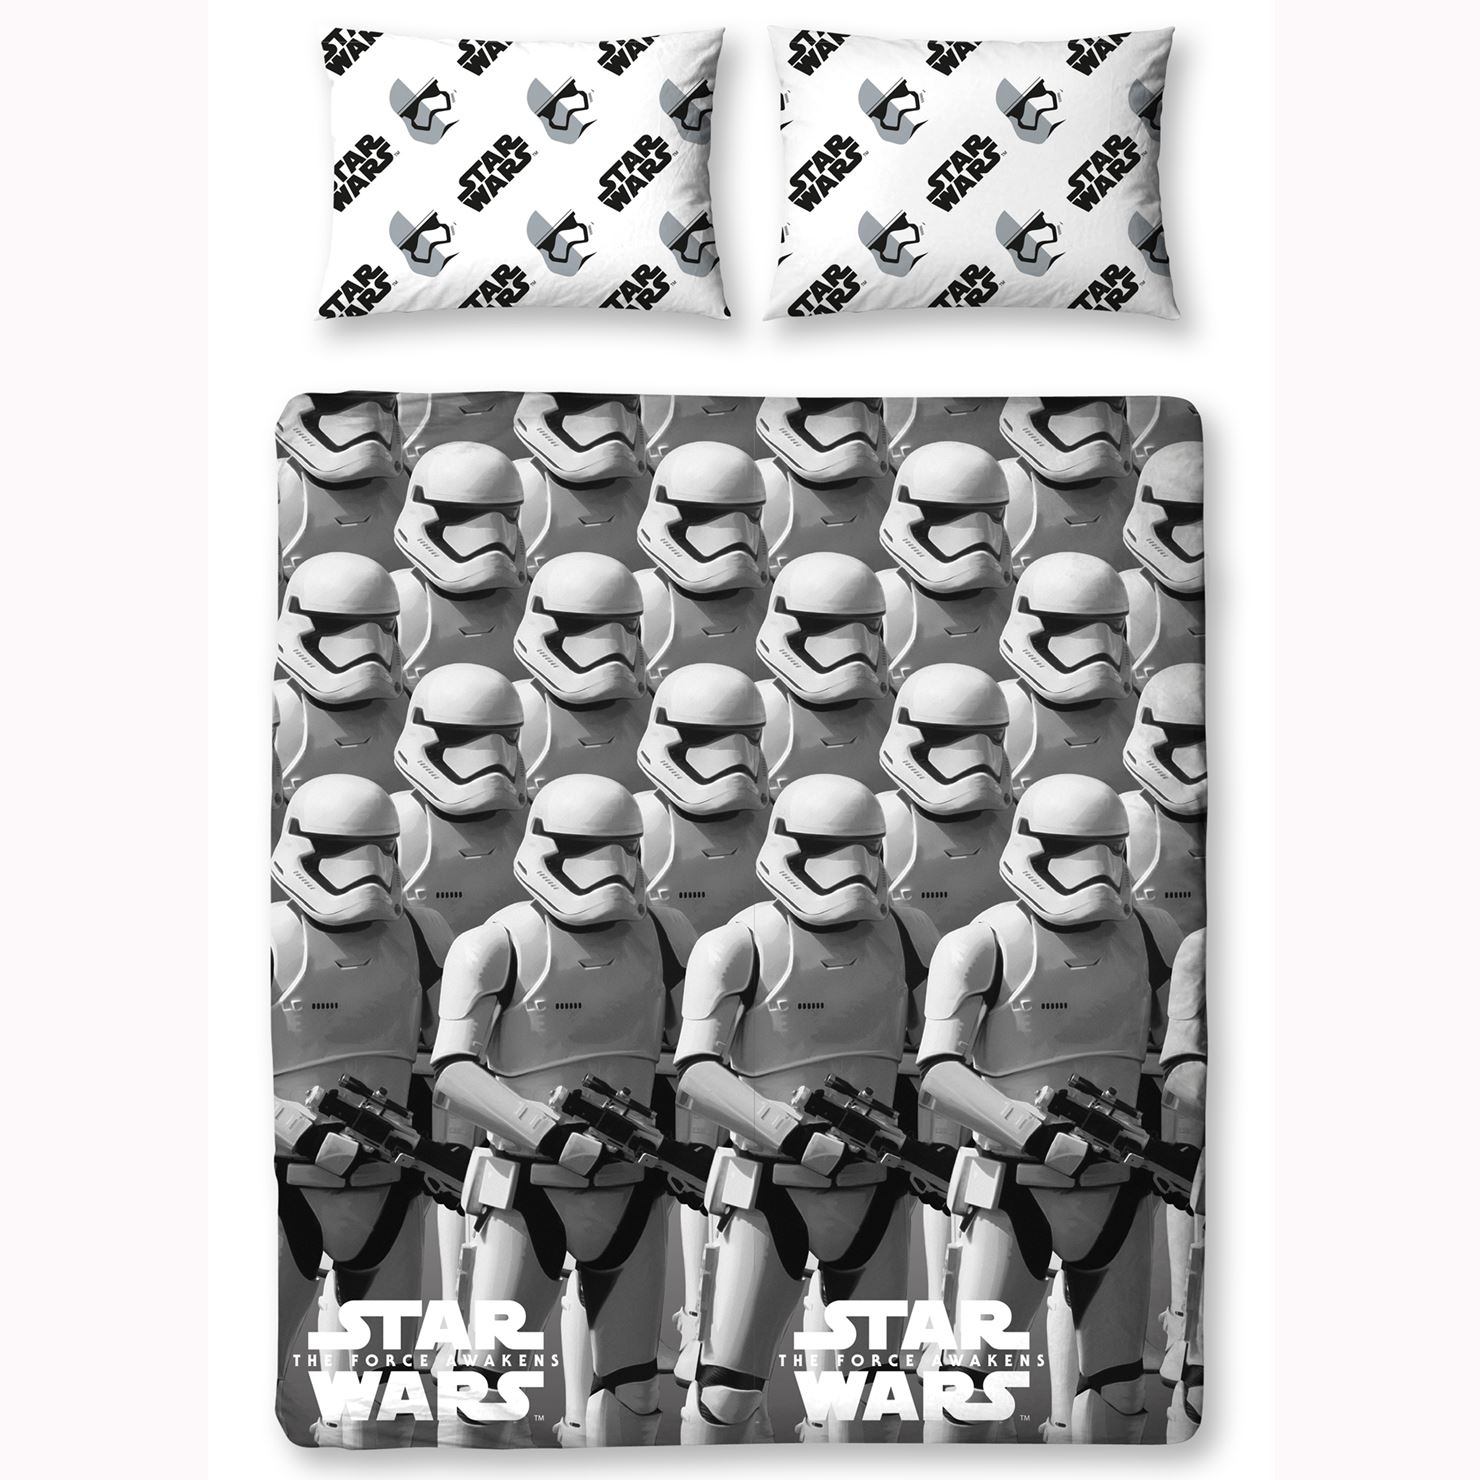 Stormtrooper Bed Sheets Star Wars Episode Vii 39awaken 39 Stormtrooper Full Size